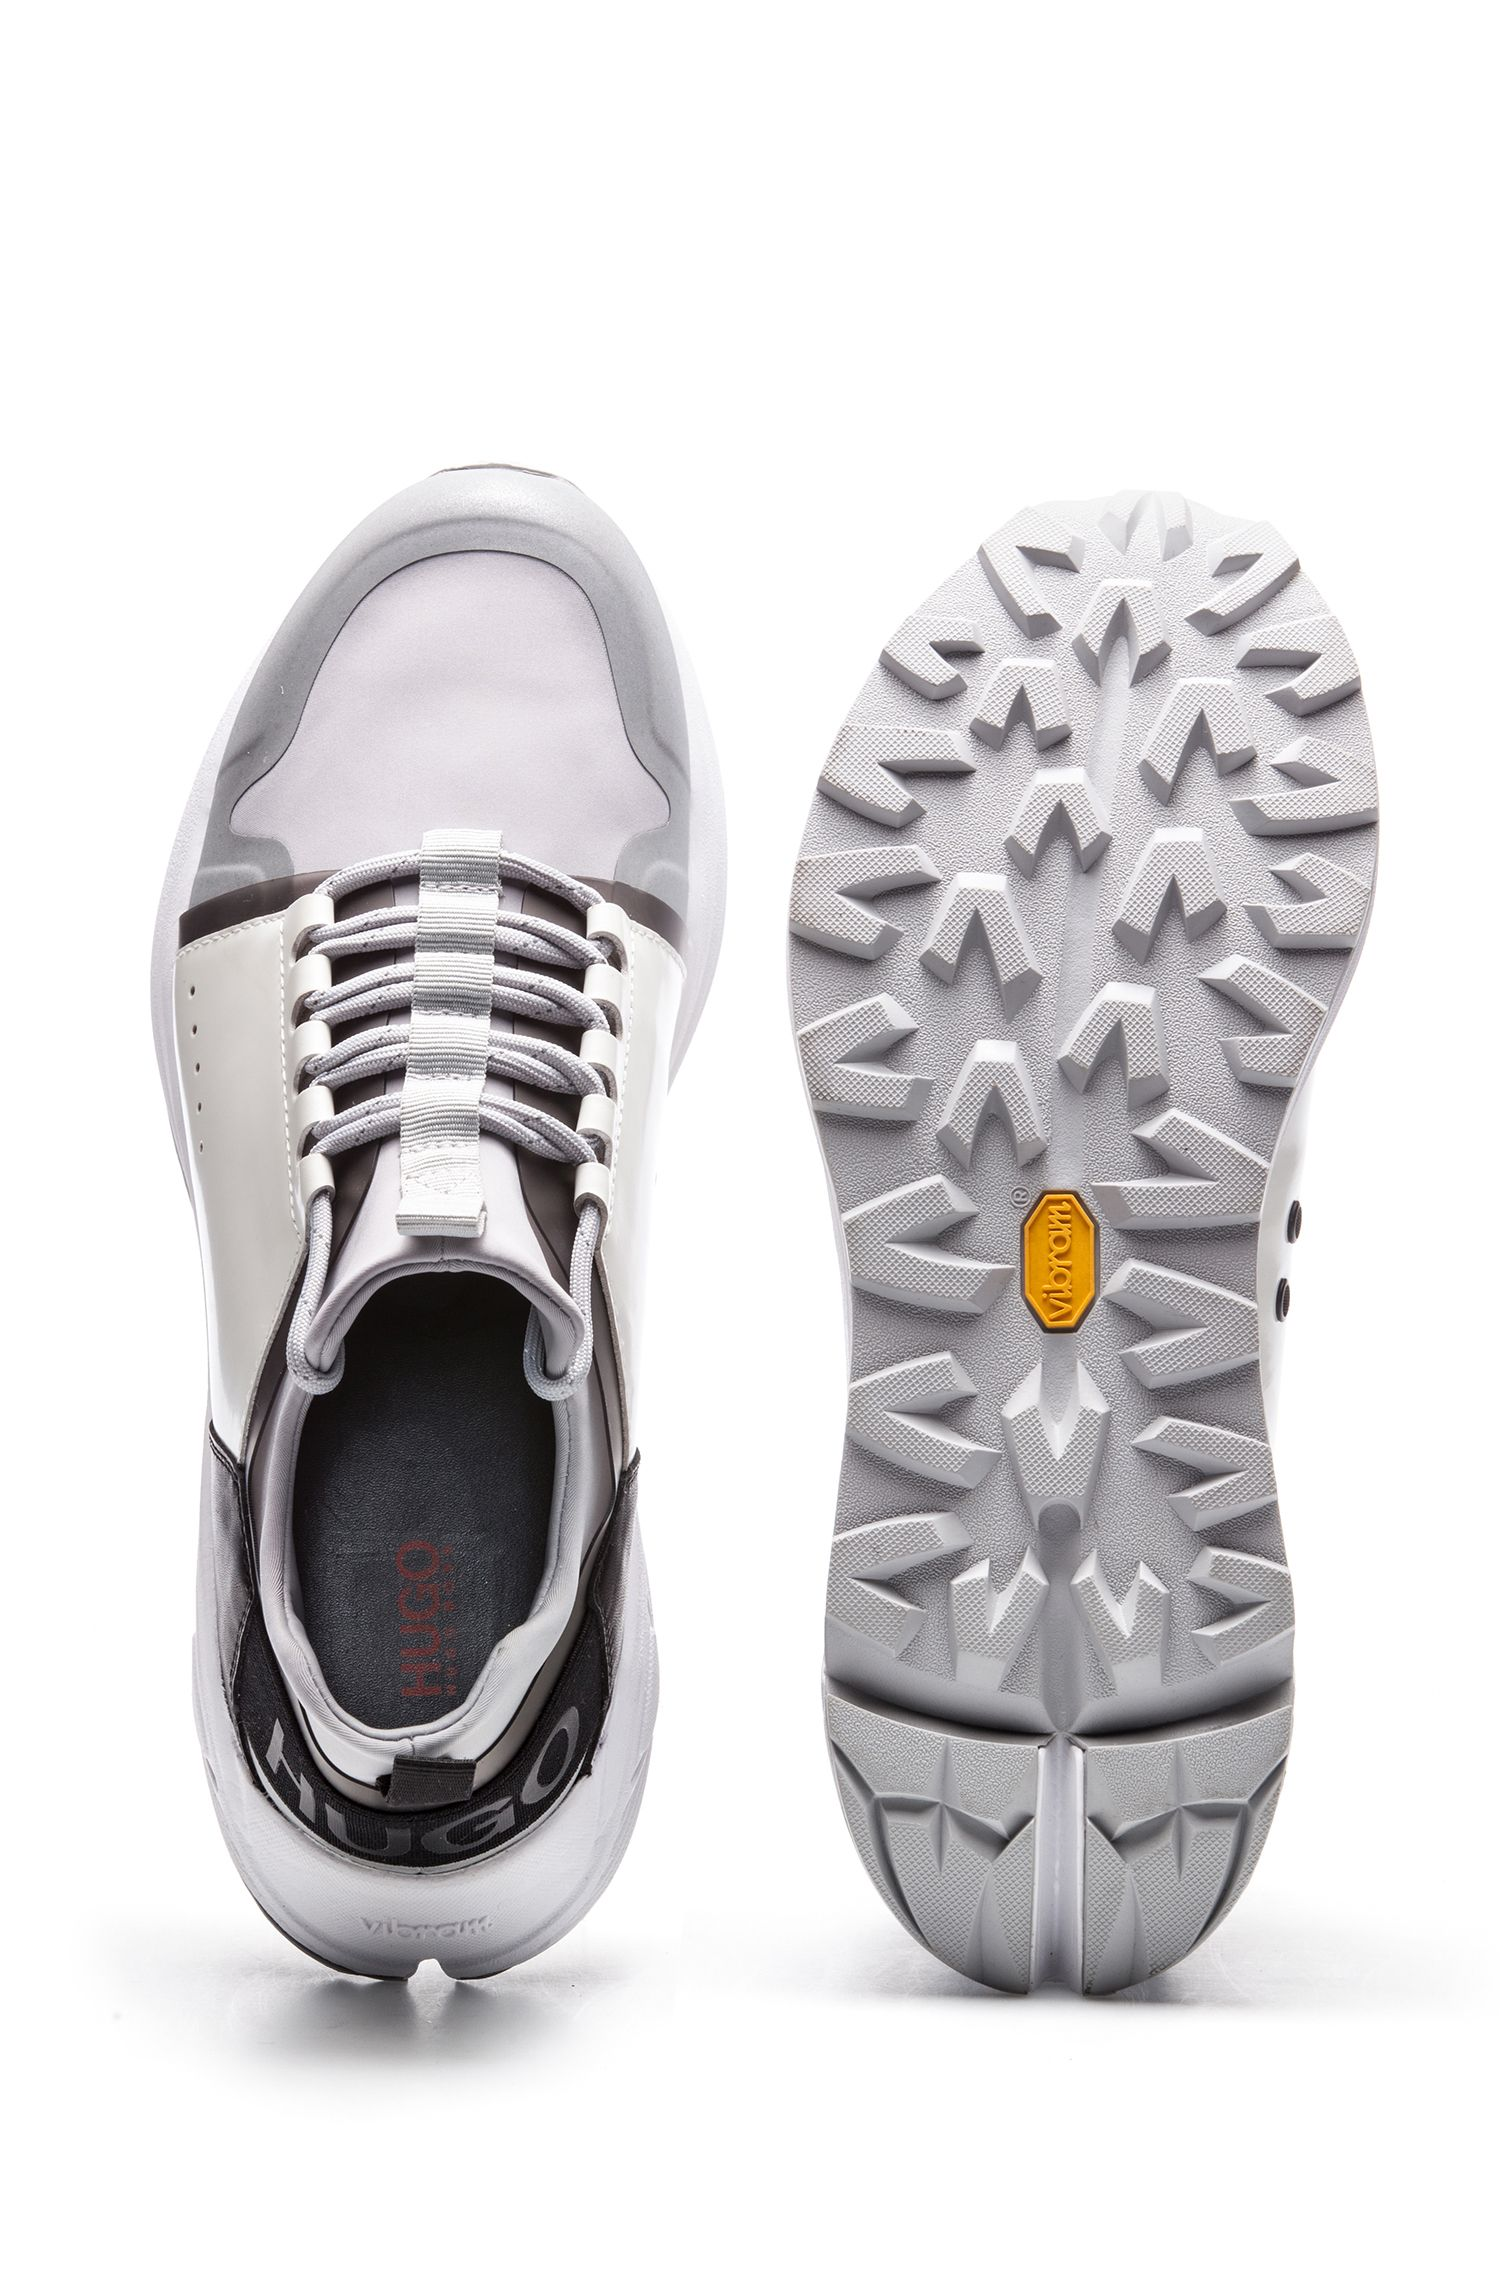 Mixed-material sneakers with Vibram sole